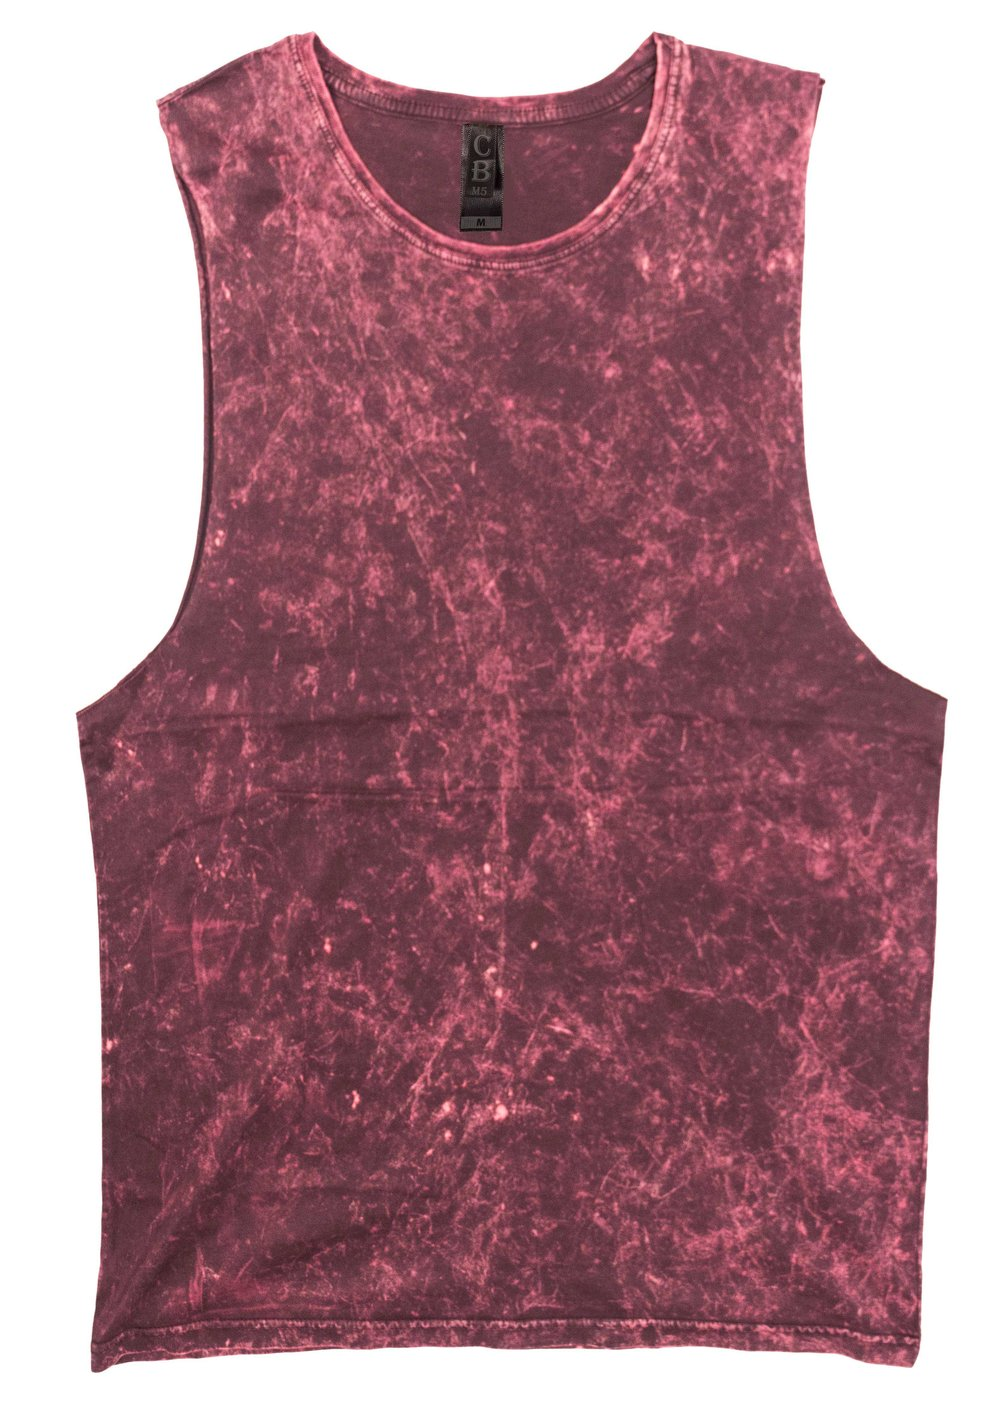 M3 - Mens Acid Wash Tank